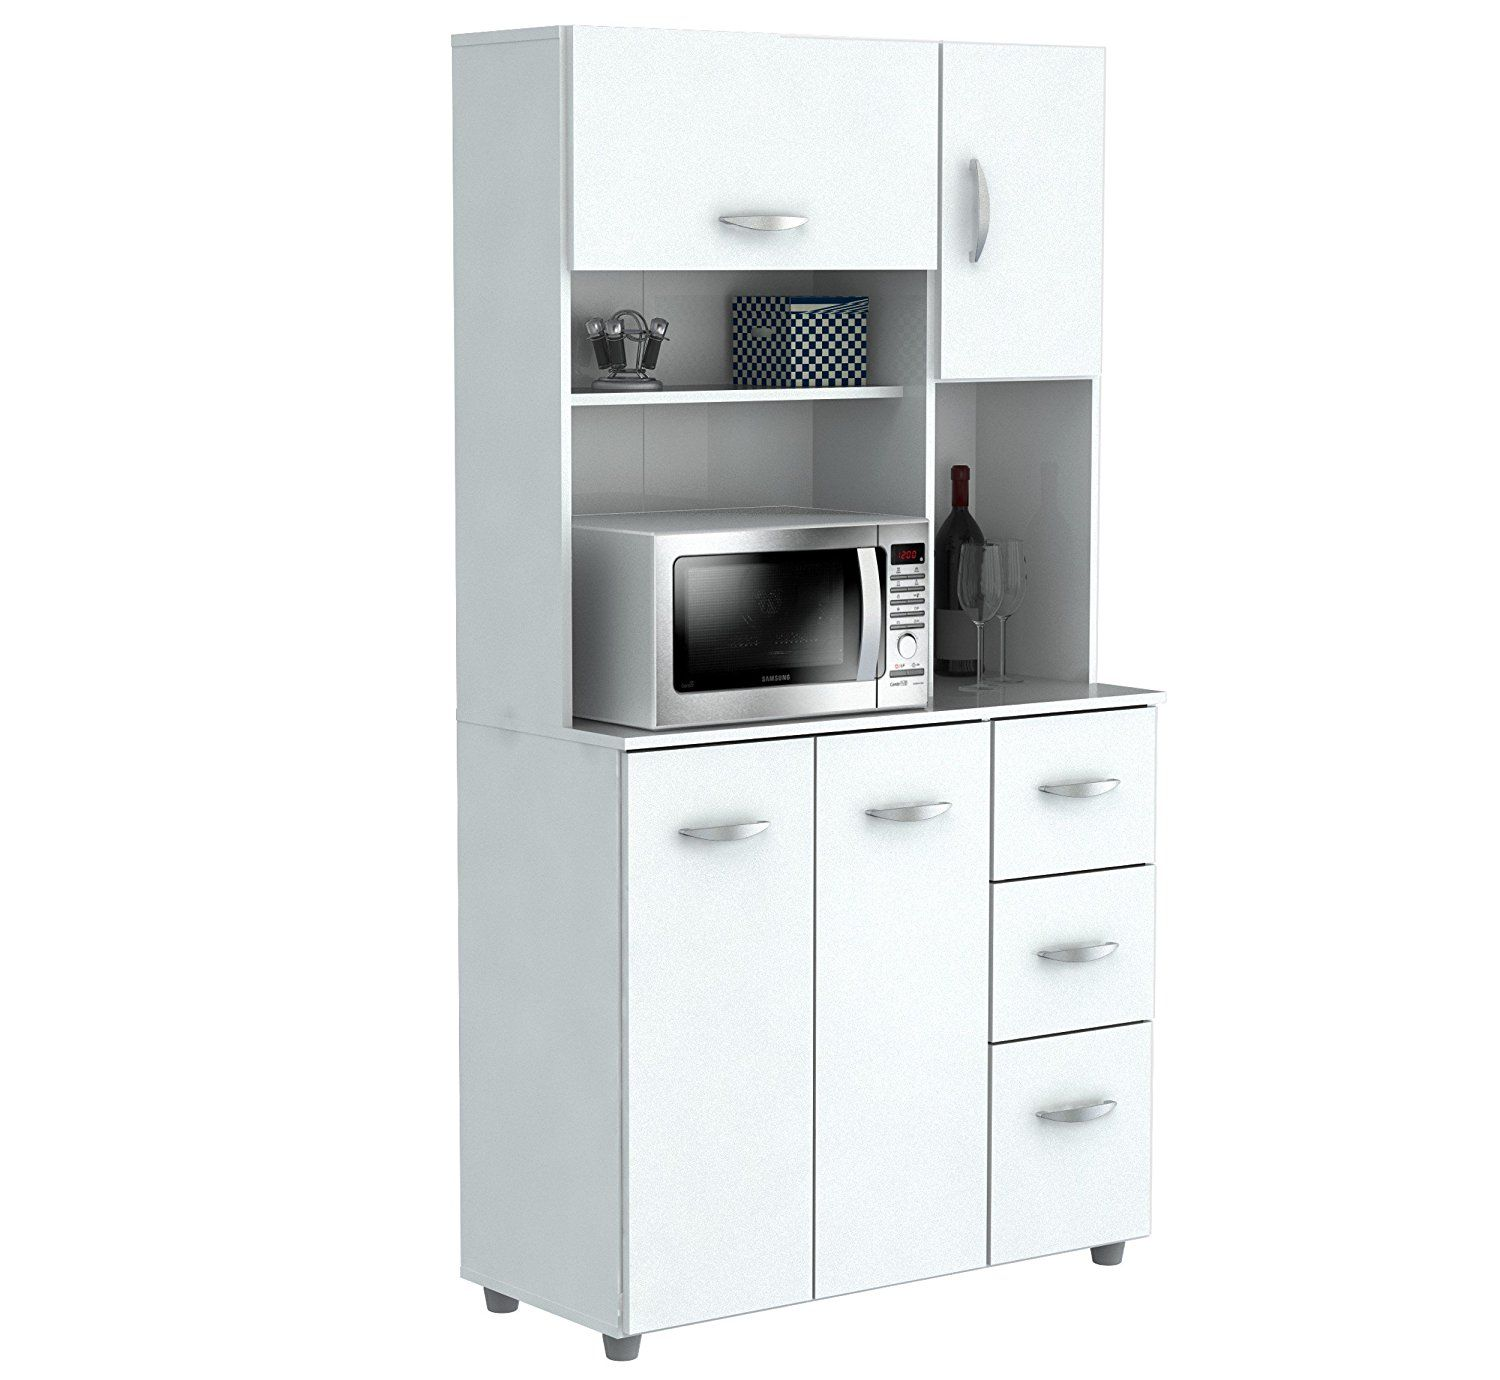 microwave carts with storage ikea   For Office   Pinterest   Mueble ...